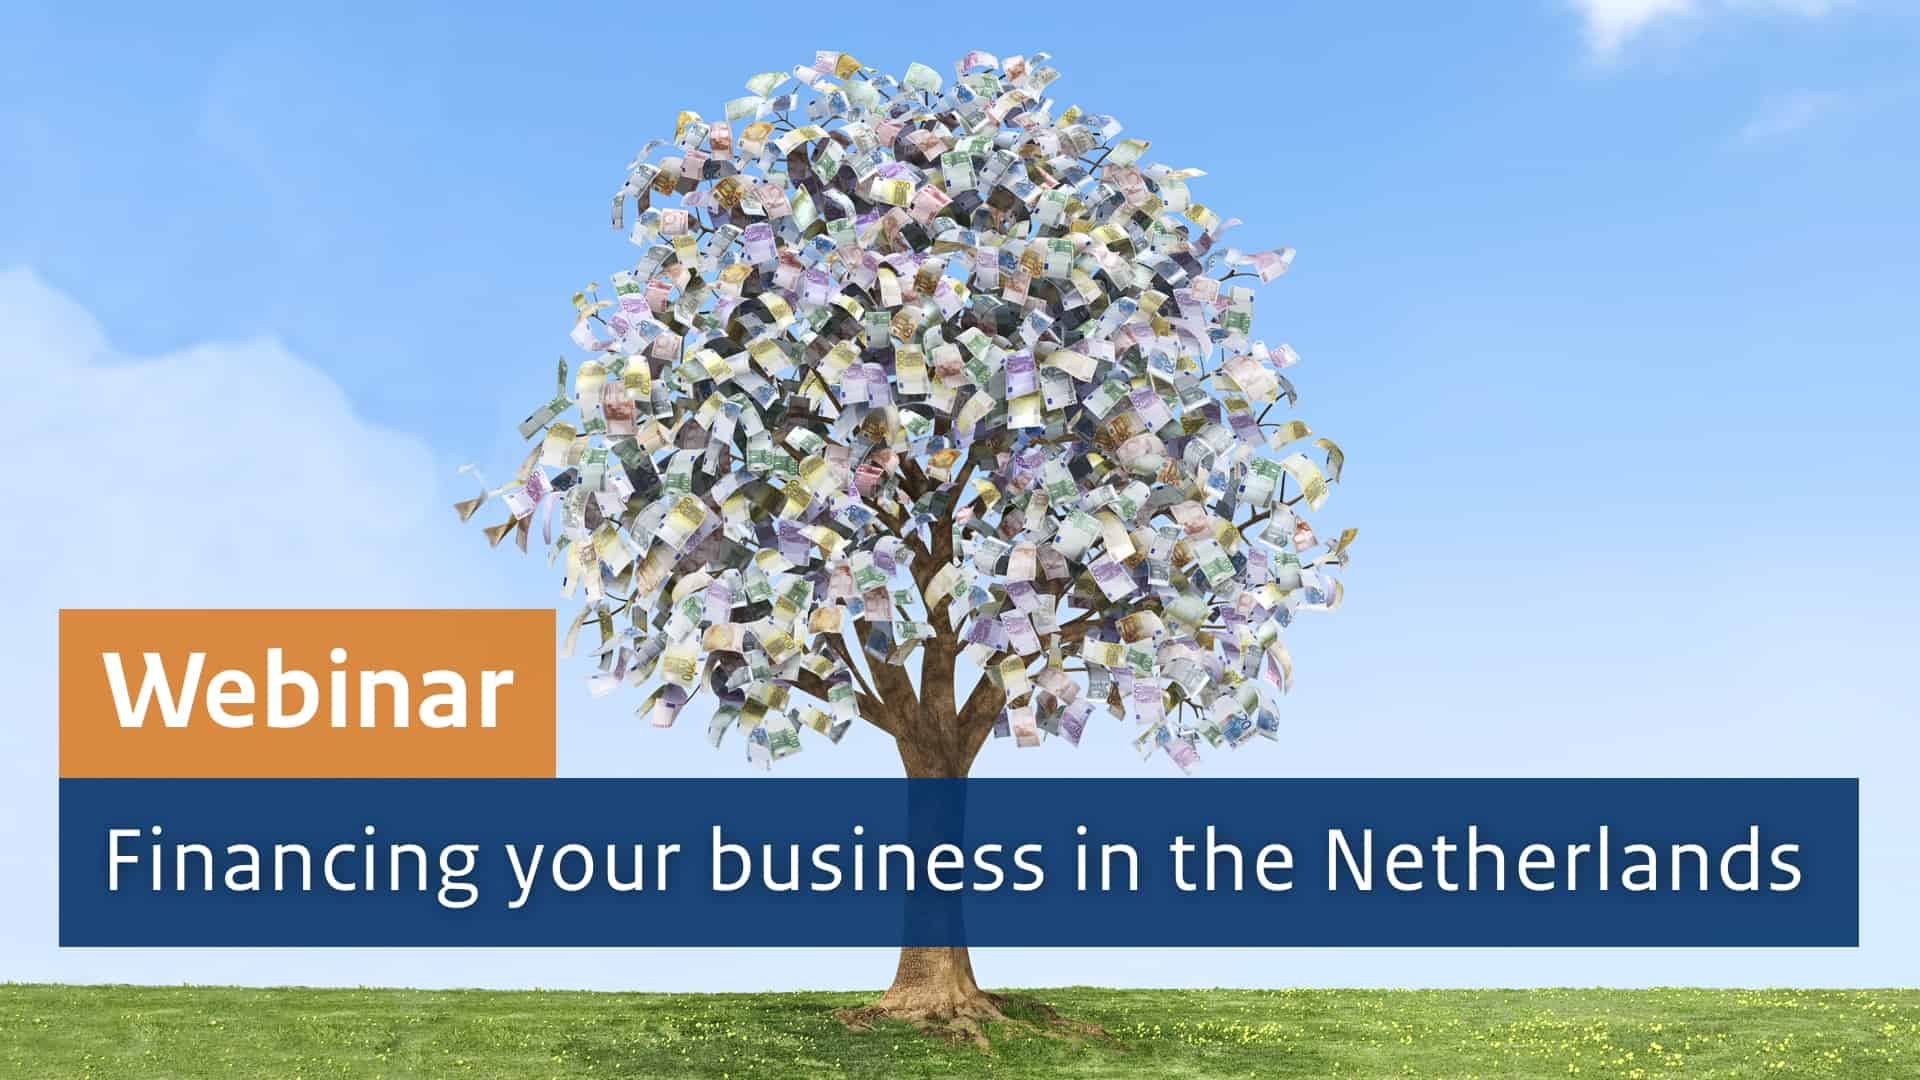 Webinar: Financing your business in the Netherlands